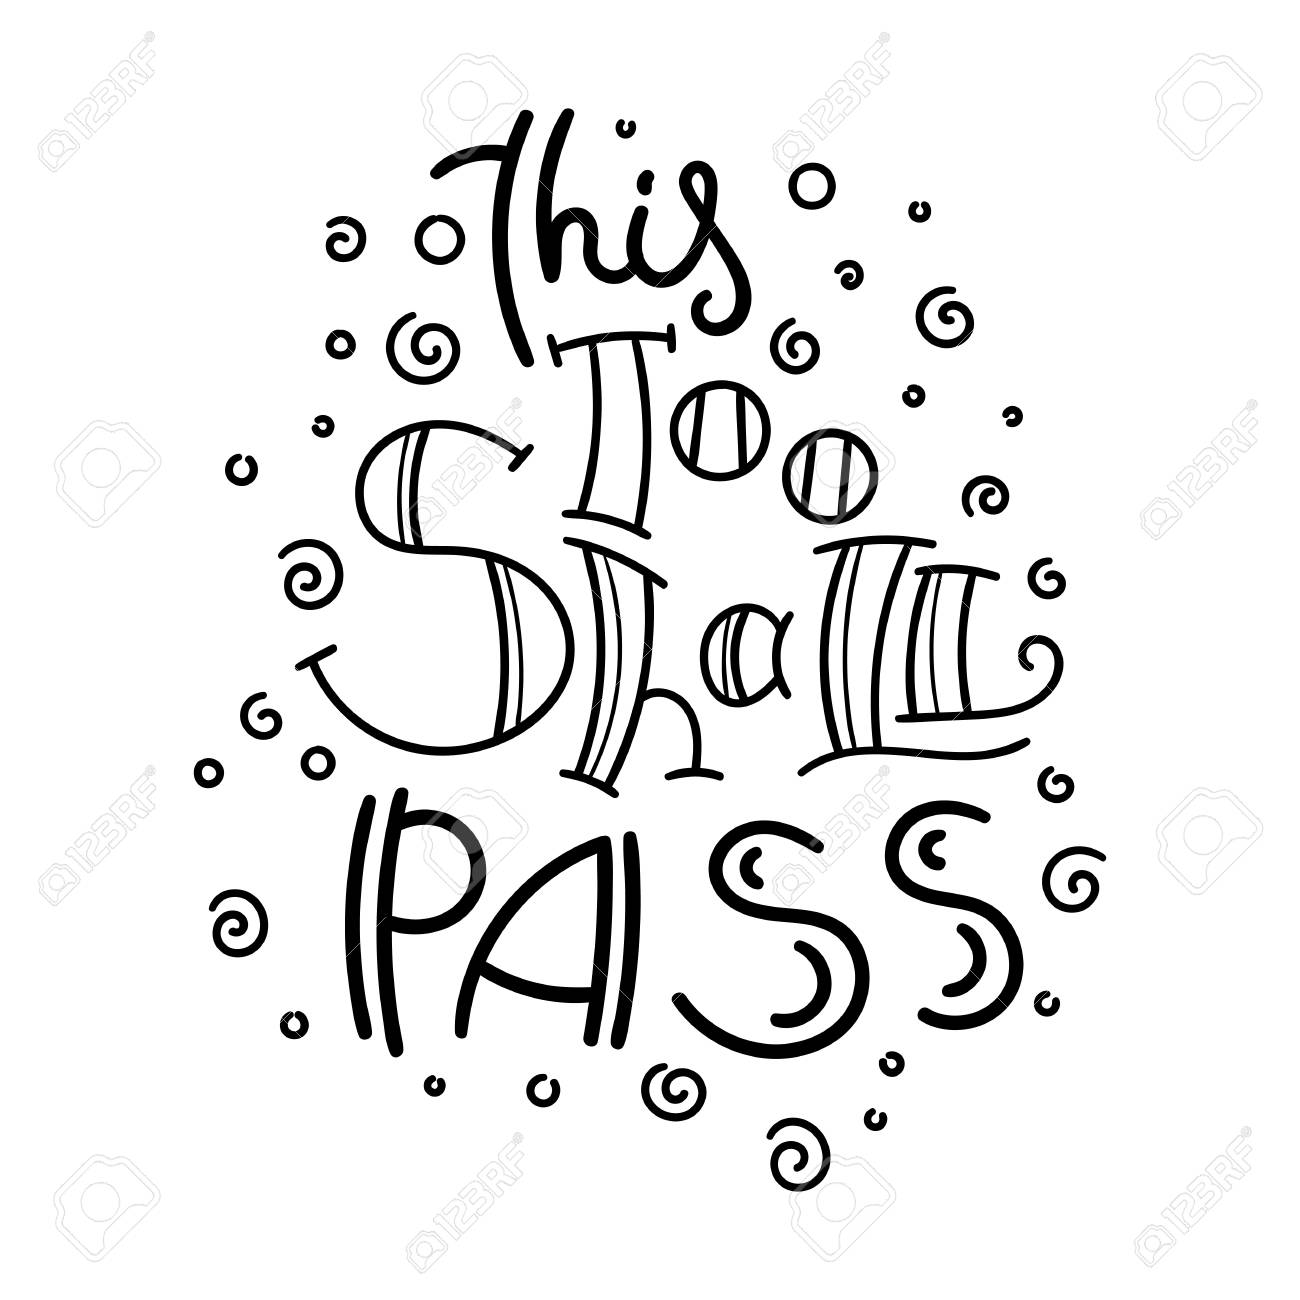 This too shall pass. Hand drawn modern image with hand-lettering..